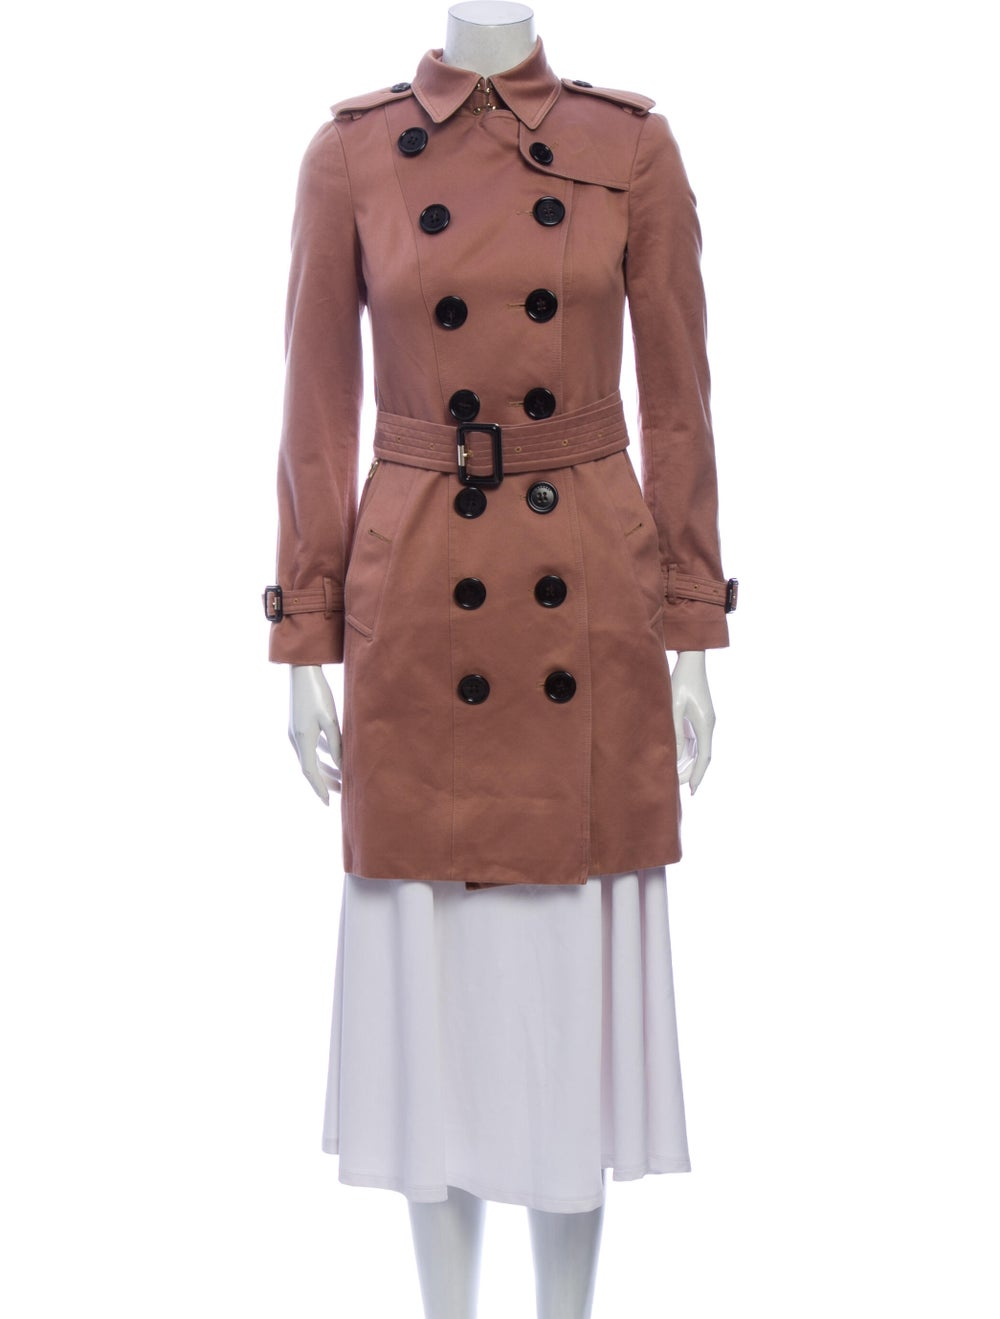 Burberry Trench Coat Pink - image 4